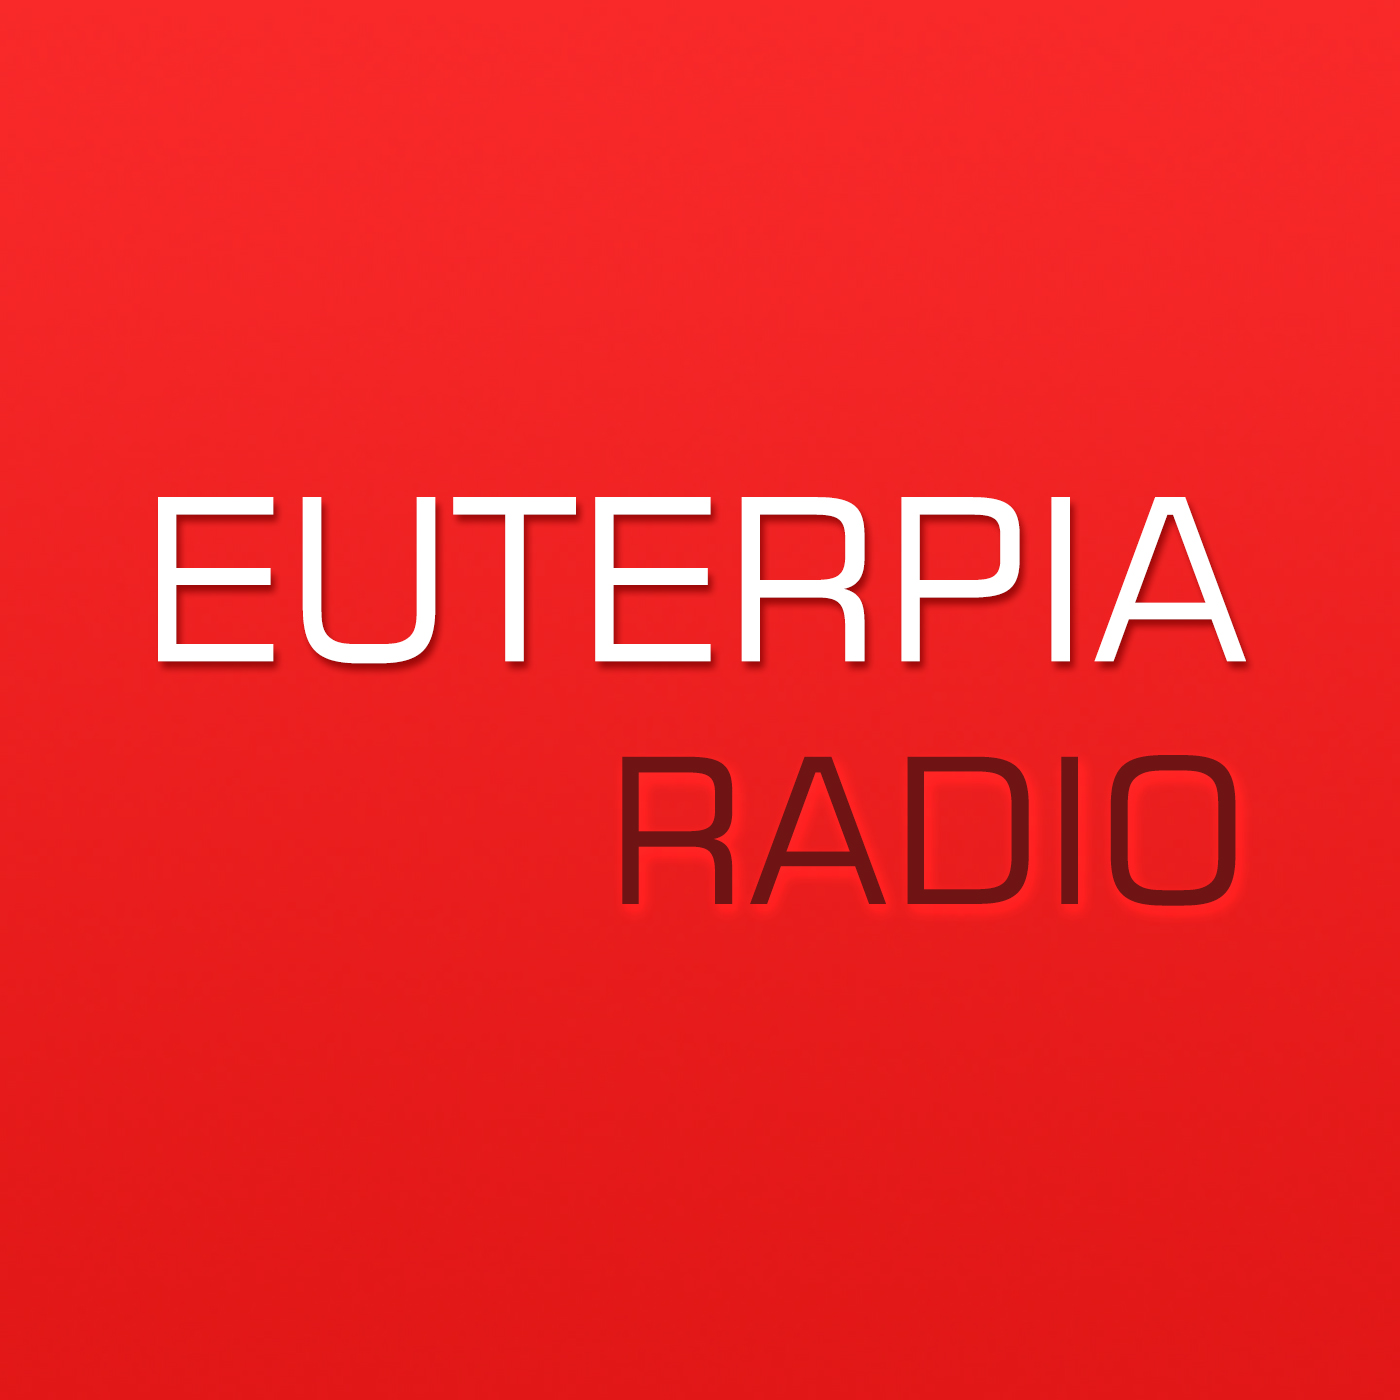 Euterpia Radio : le Podcast